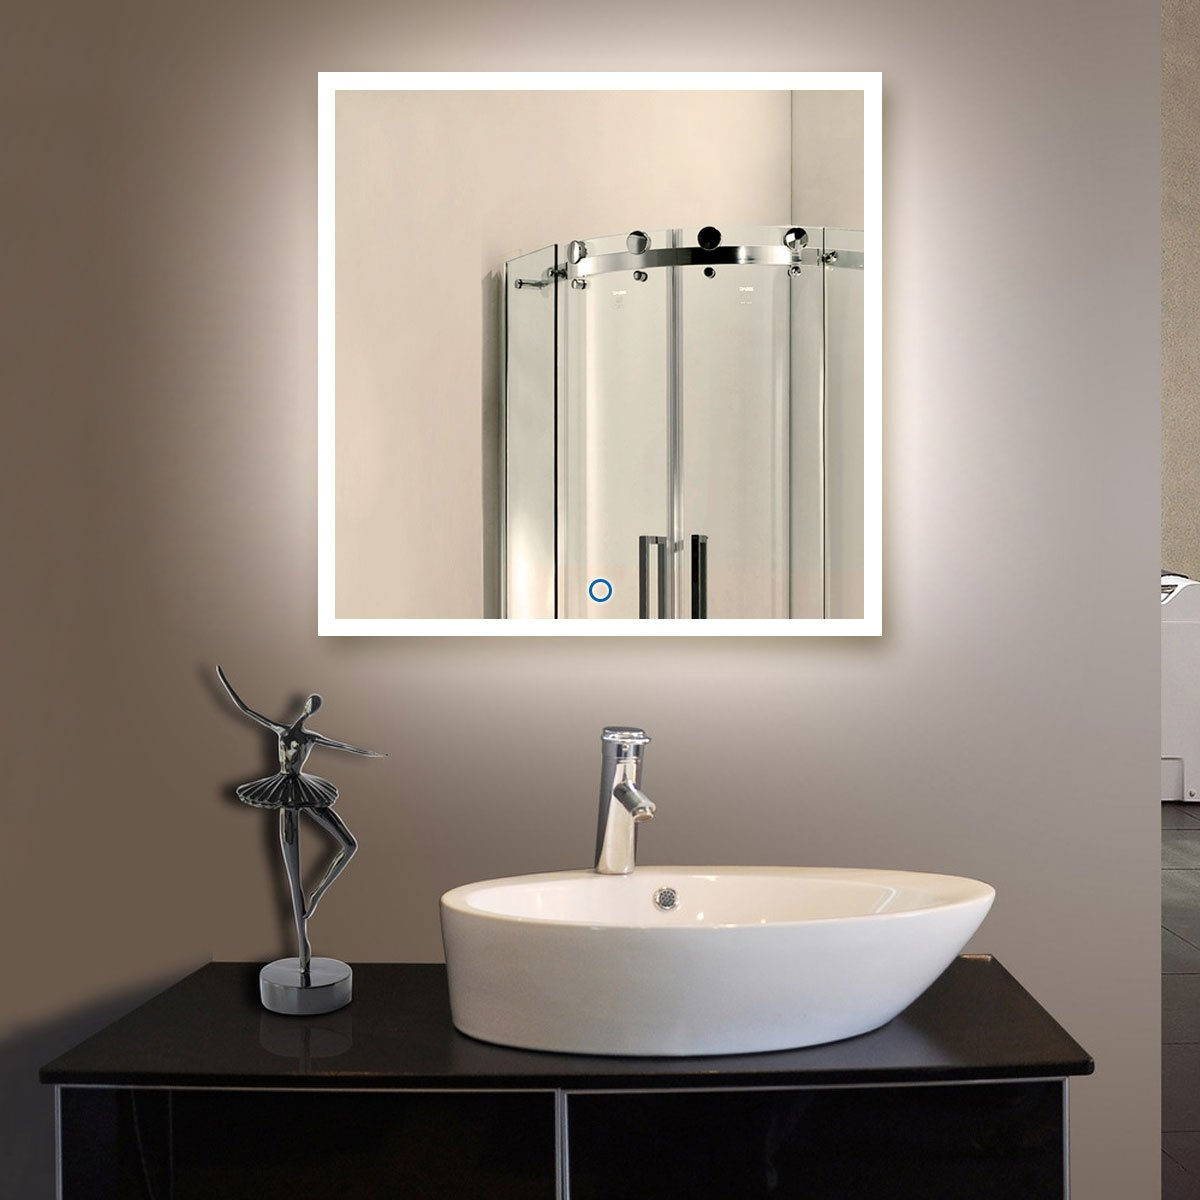 36 x 36 In Horizontal and Vertical LED Bathroom Silvered Mirror with Touch Button (N031-E) by BHBL